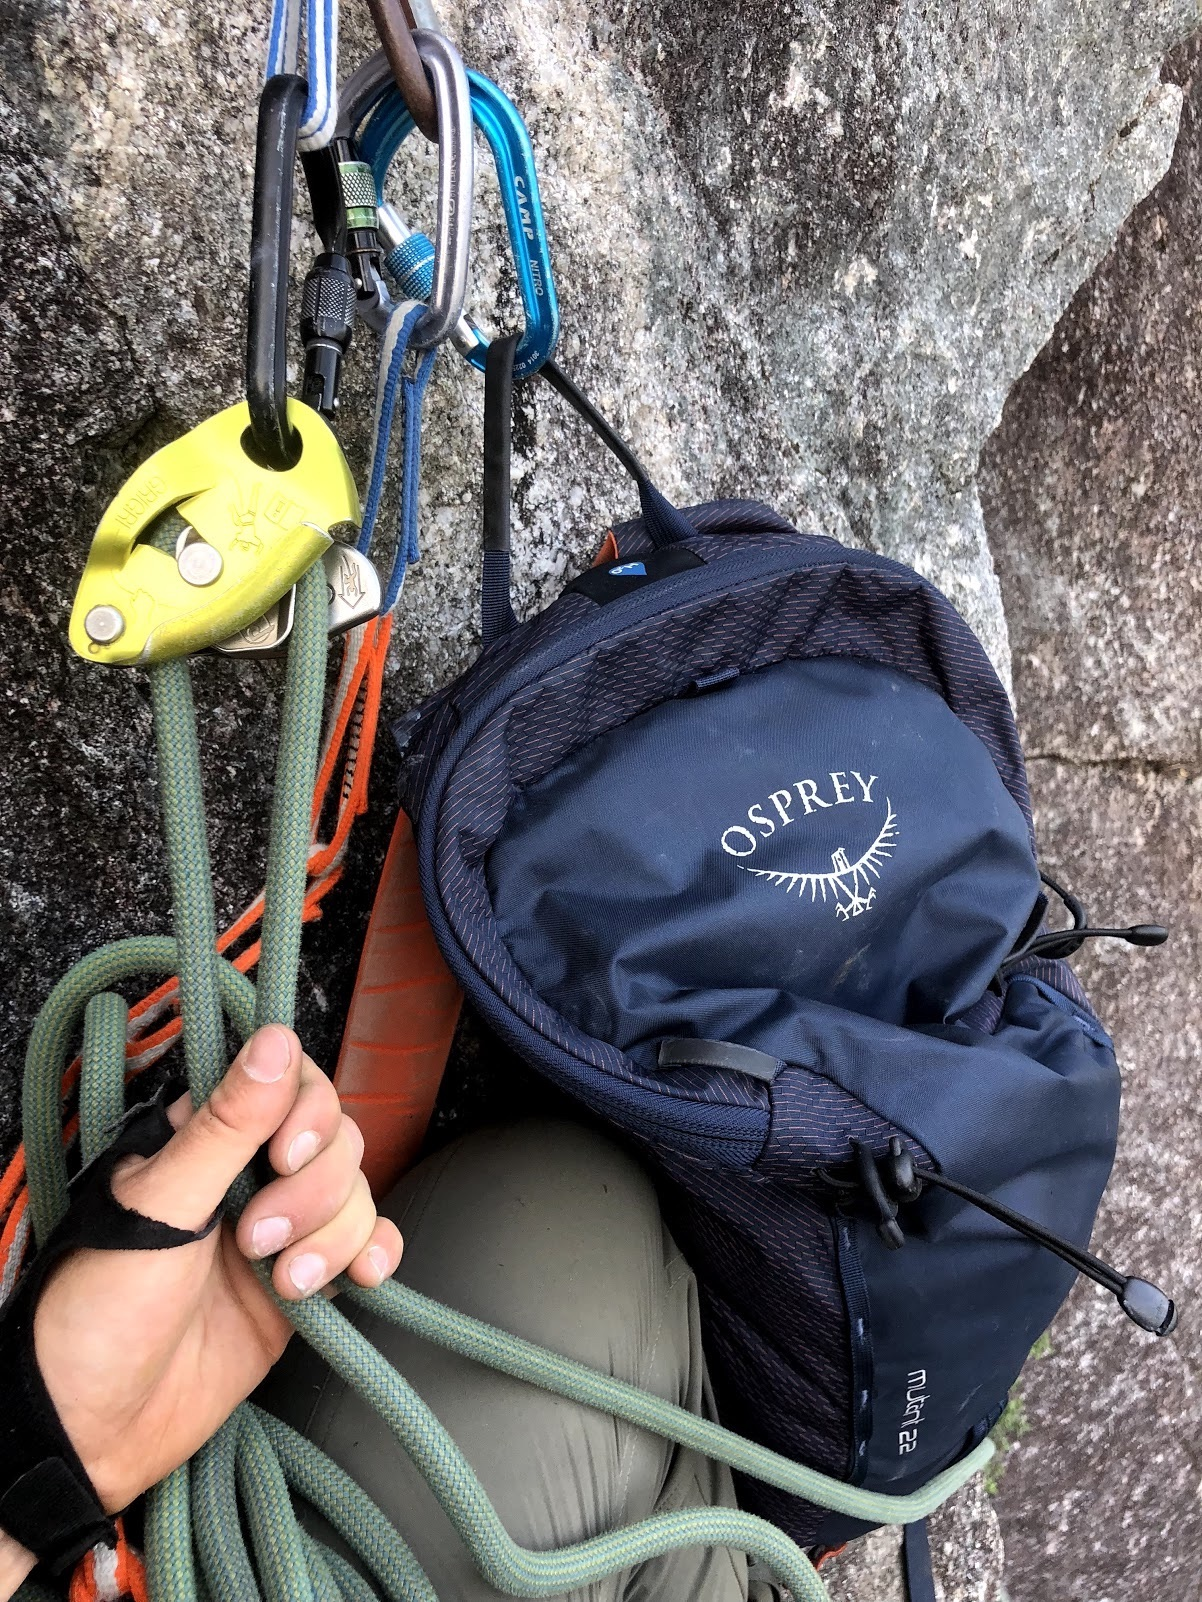 The Osprey Mutant 22-liter after being dragged up Pitch 2 of Quickdraw in Squamish, British Columbia. Essentially good as new! [Photo] Mallorie Estenson